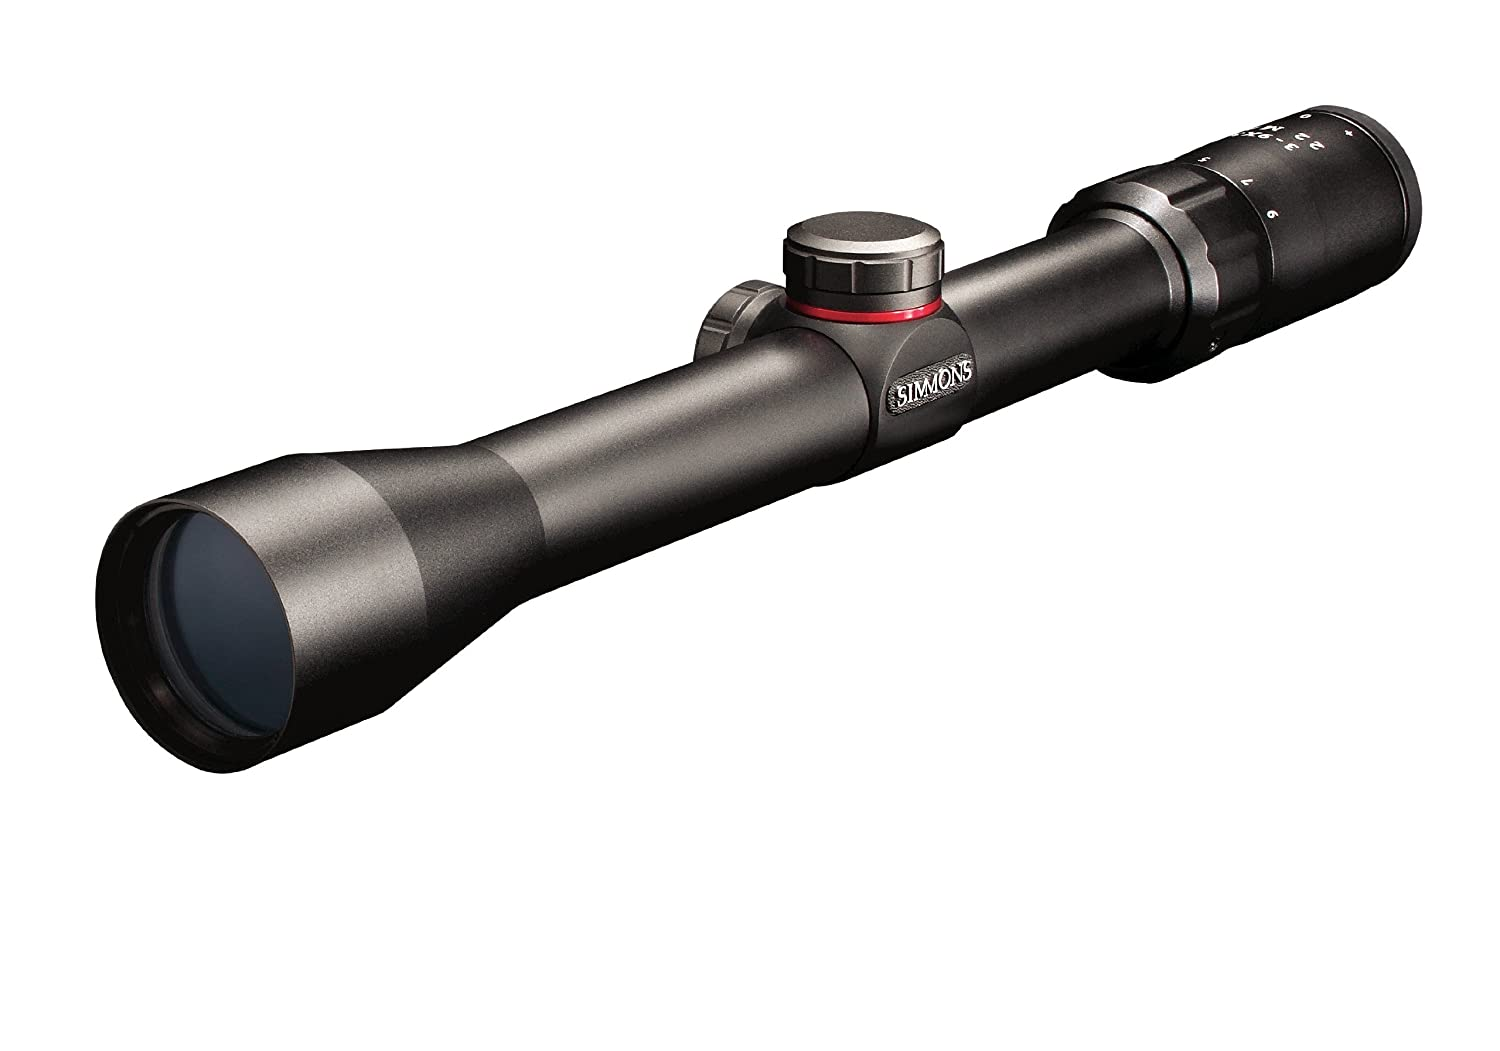 Simmons .22 Mag TruPlex Reticle Rimfire Riflescope with Rings, 4x32mm (Matte) 511022